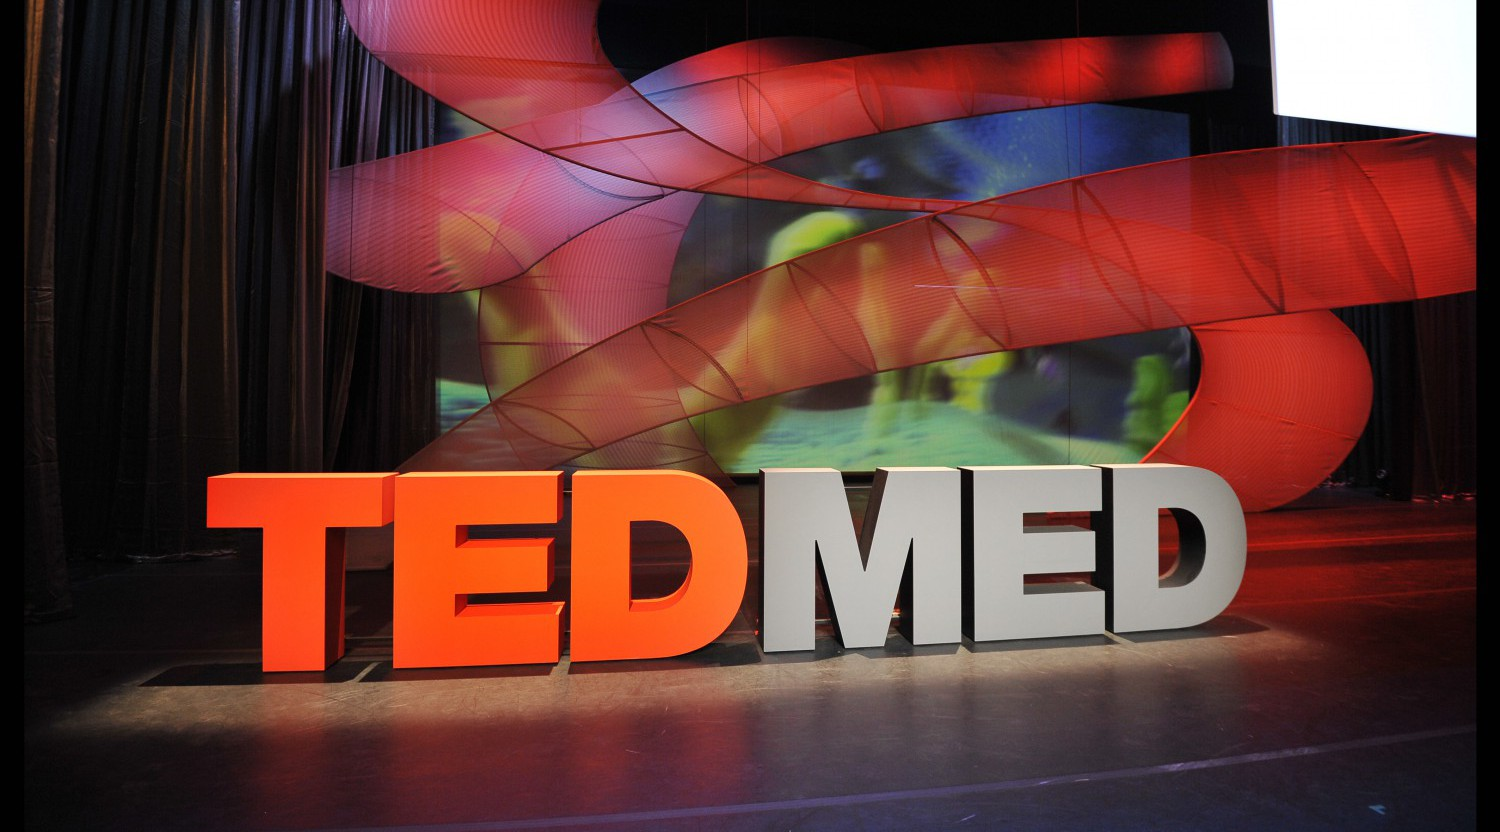 Symphony's Jonathan Fritz Selected as TEDMED Research Scholar